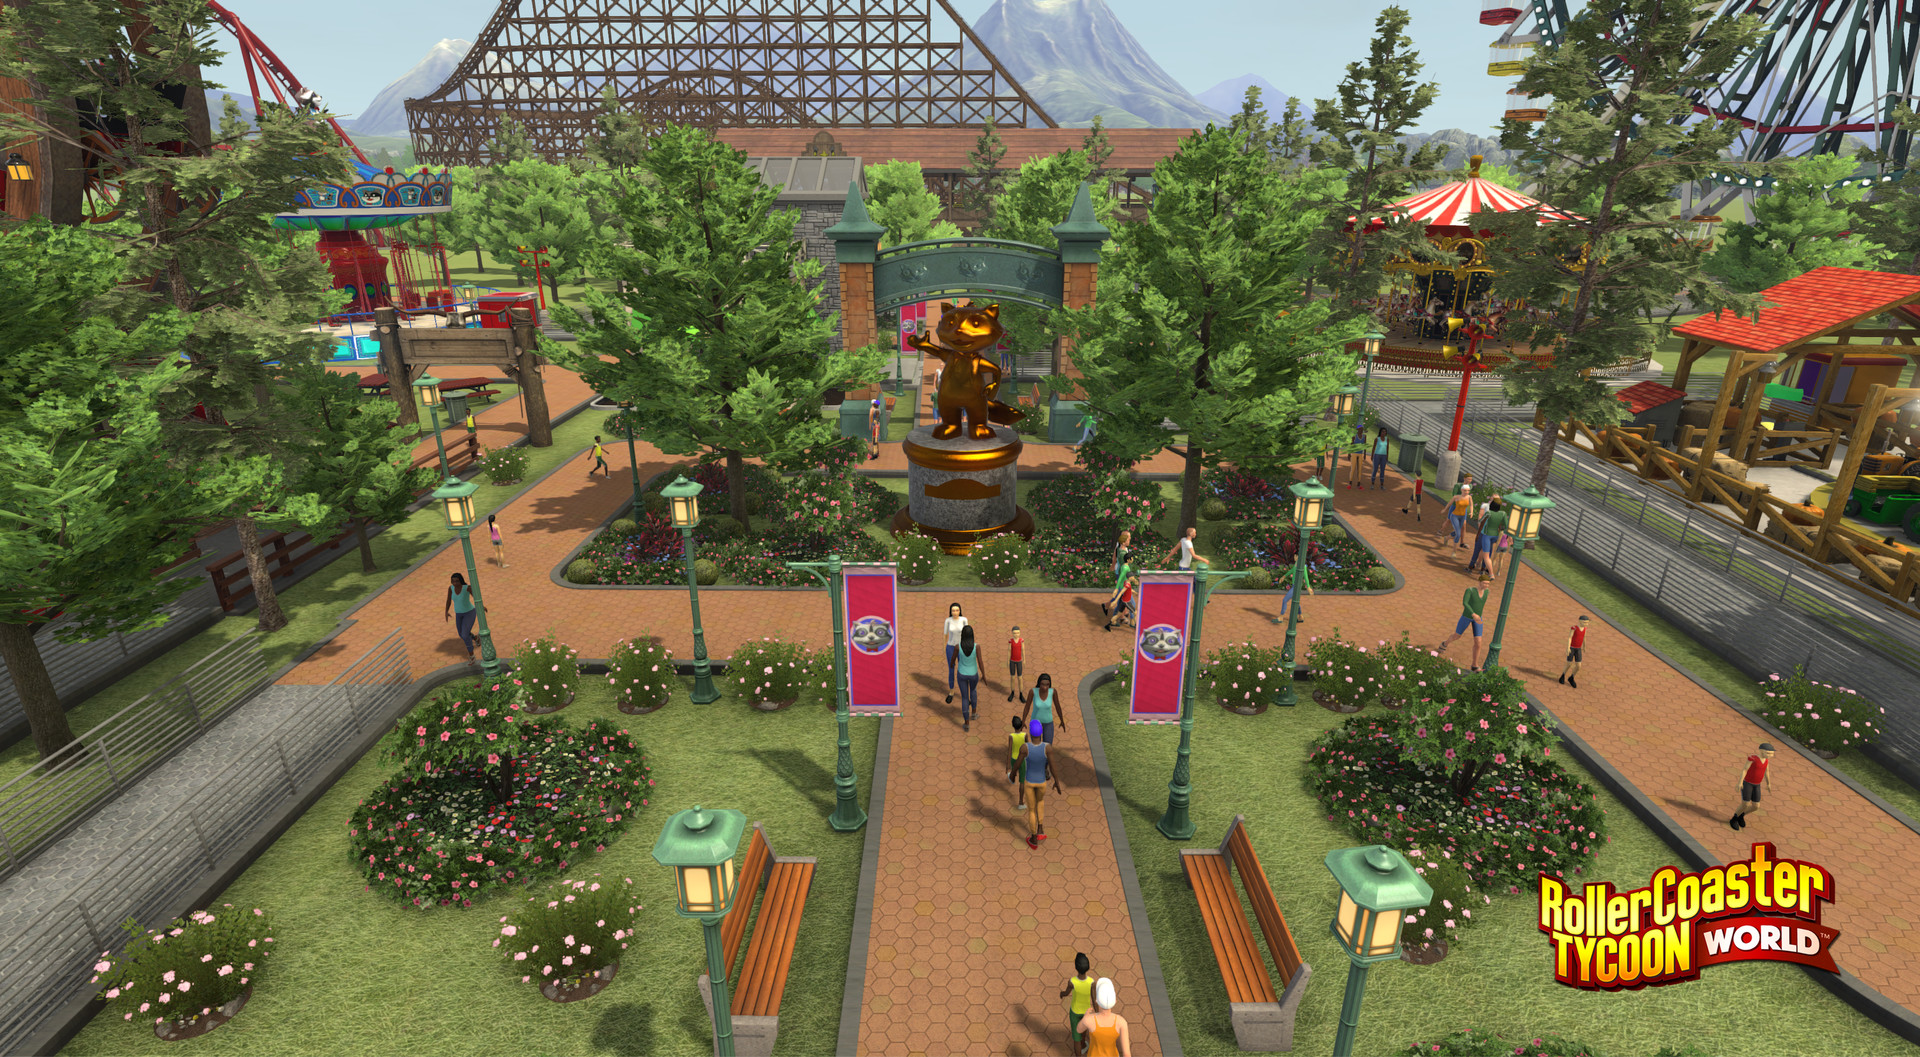 RollerCoaster Tycoon World Review Screenshot 1